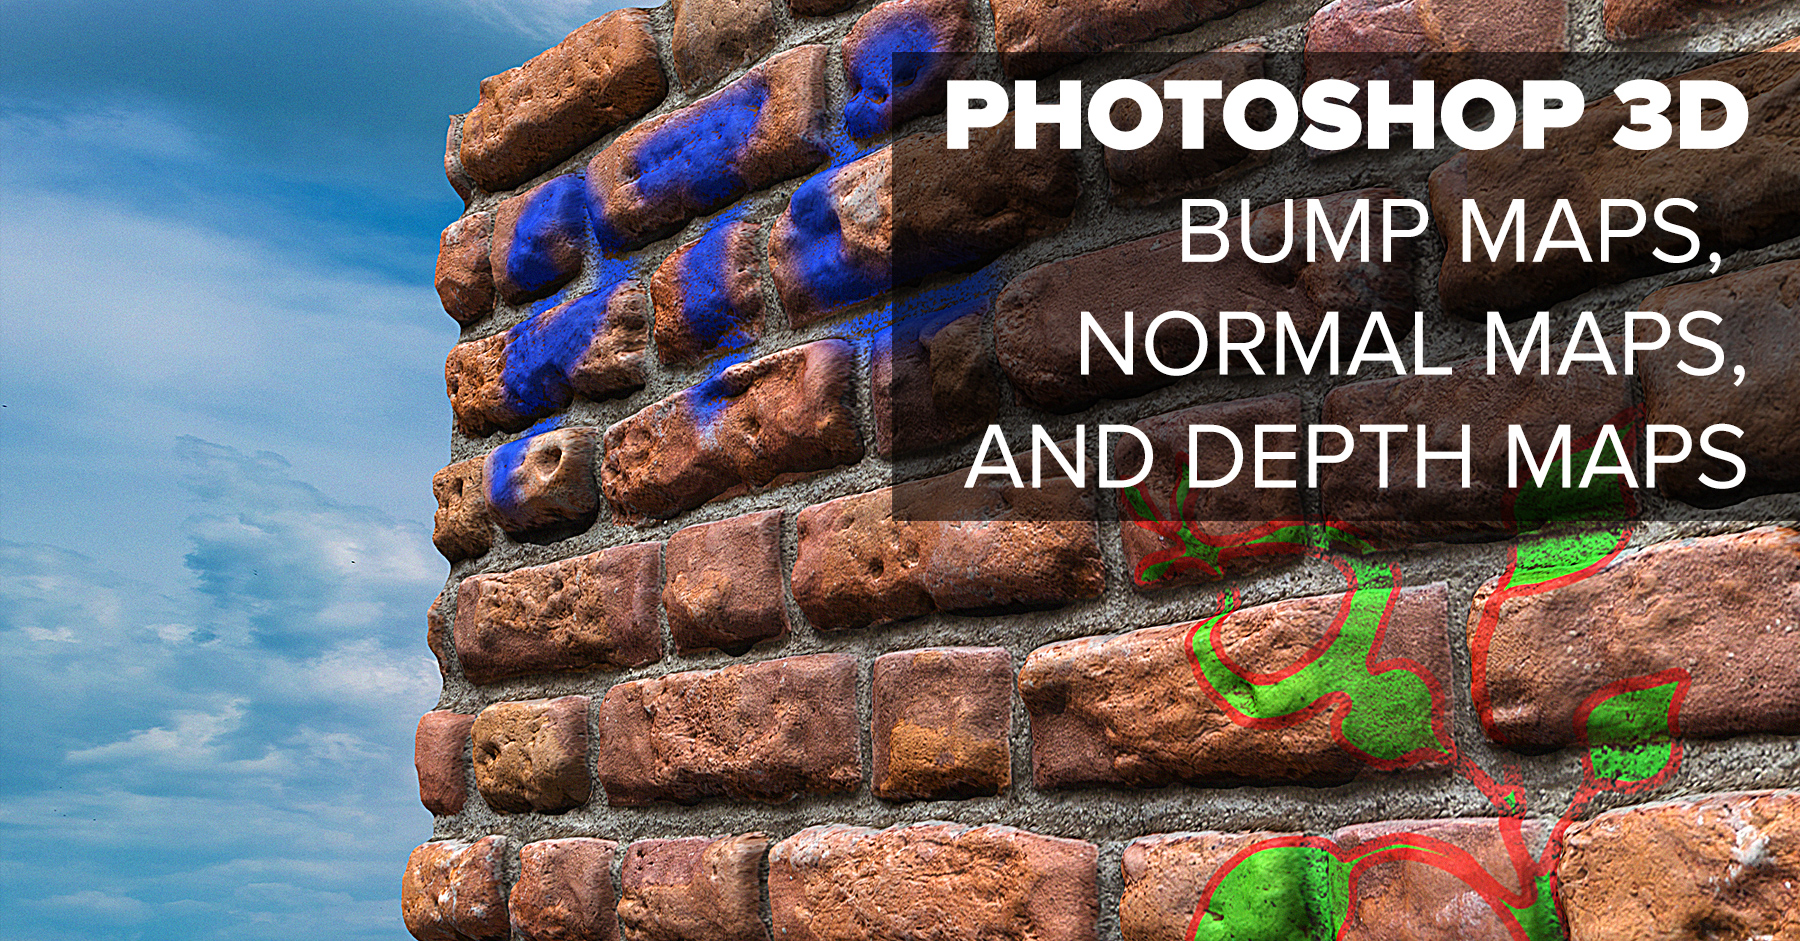 Photoshop 3D - Bump, Normal, and Depth Maps